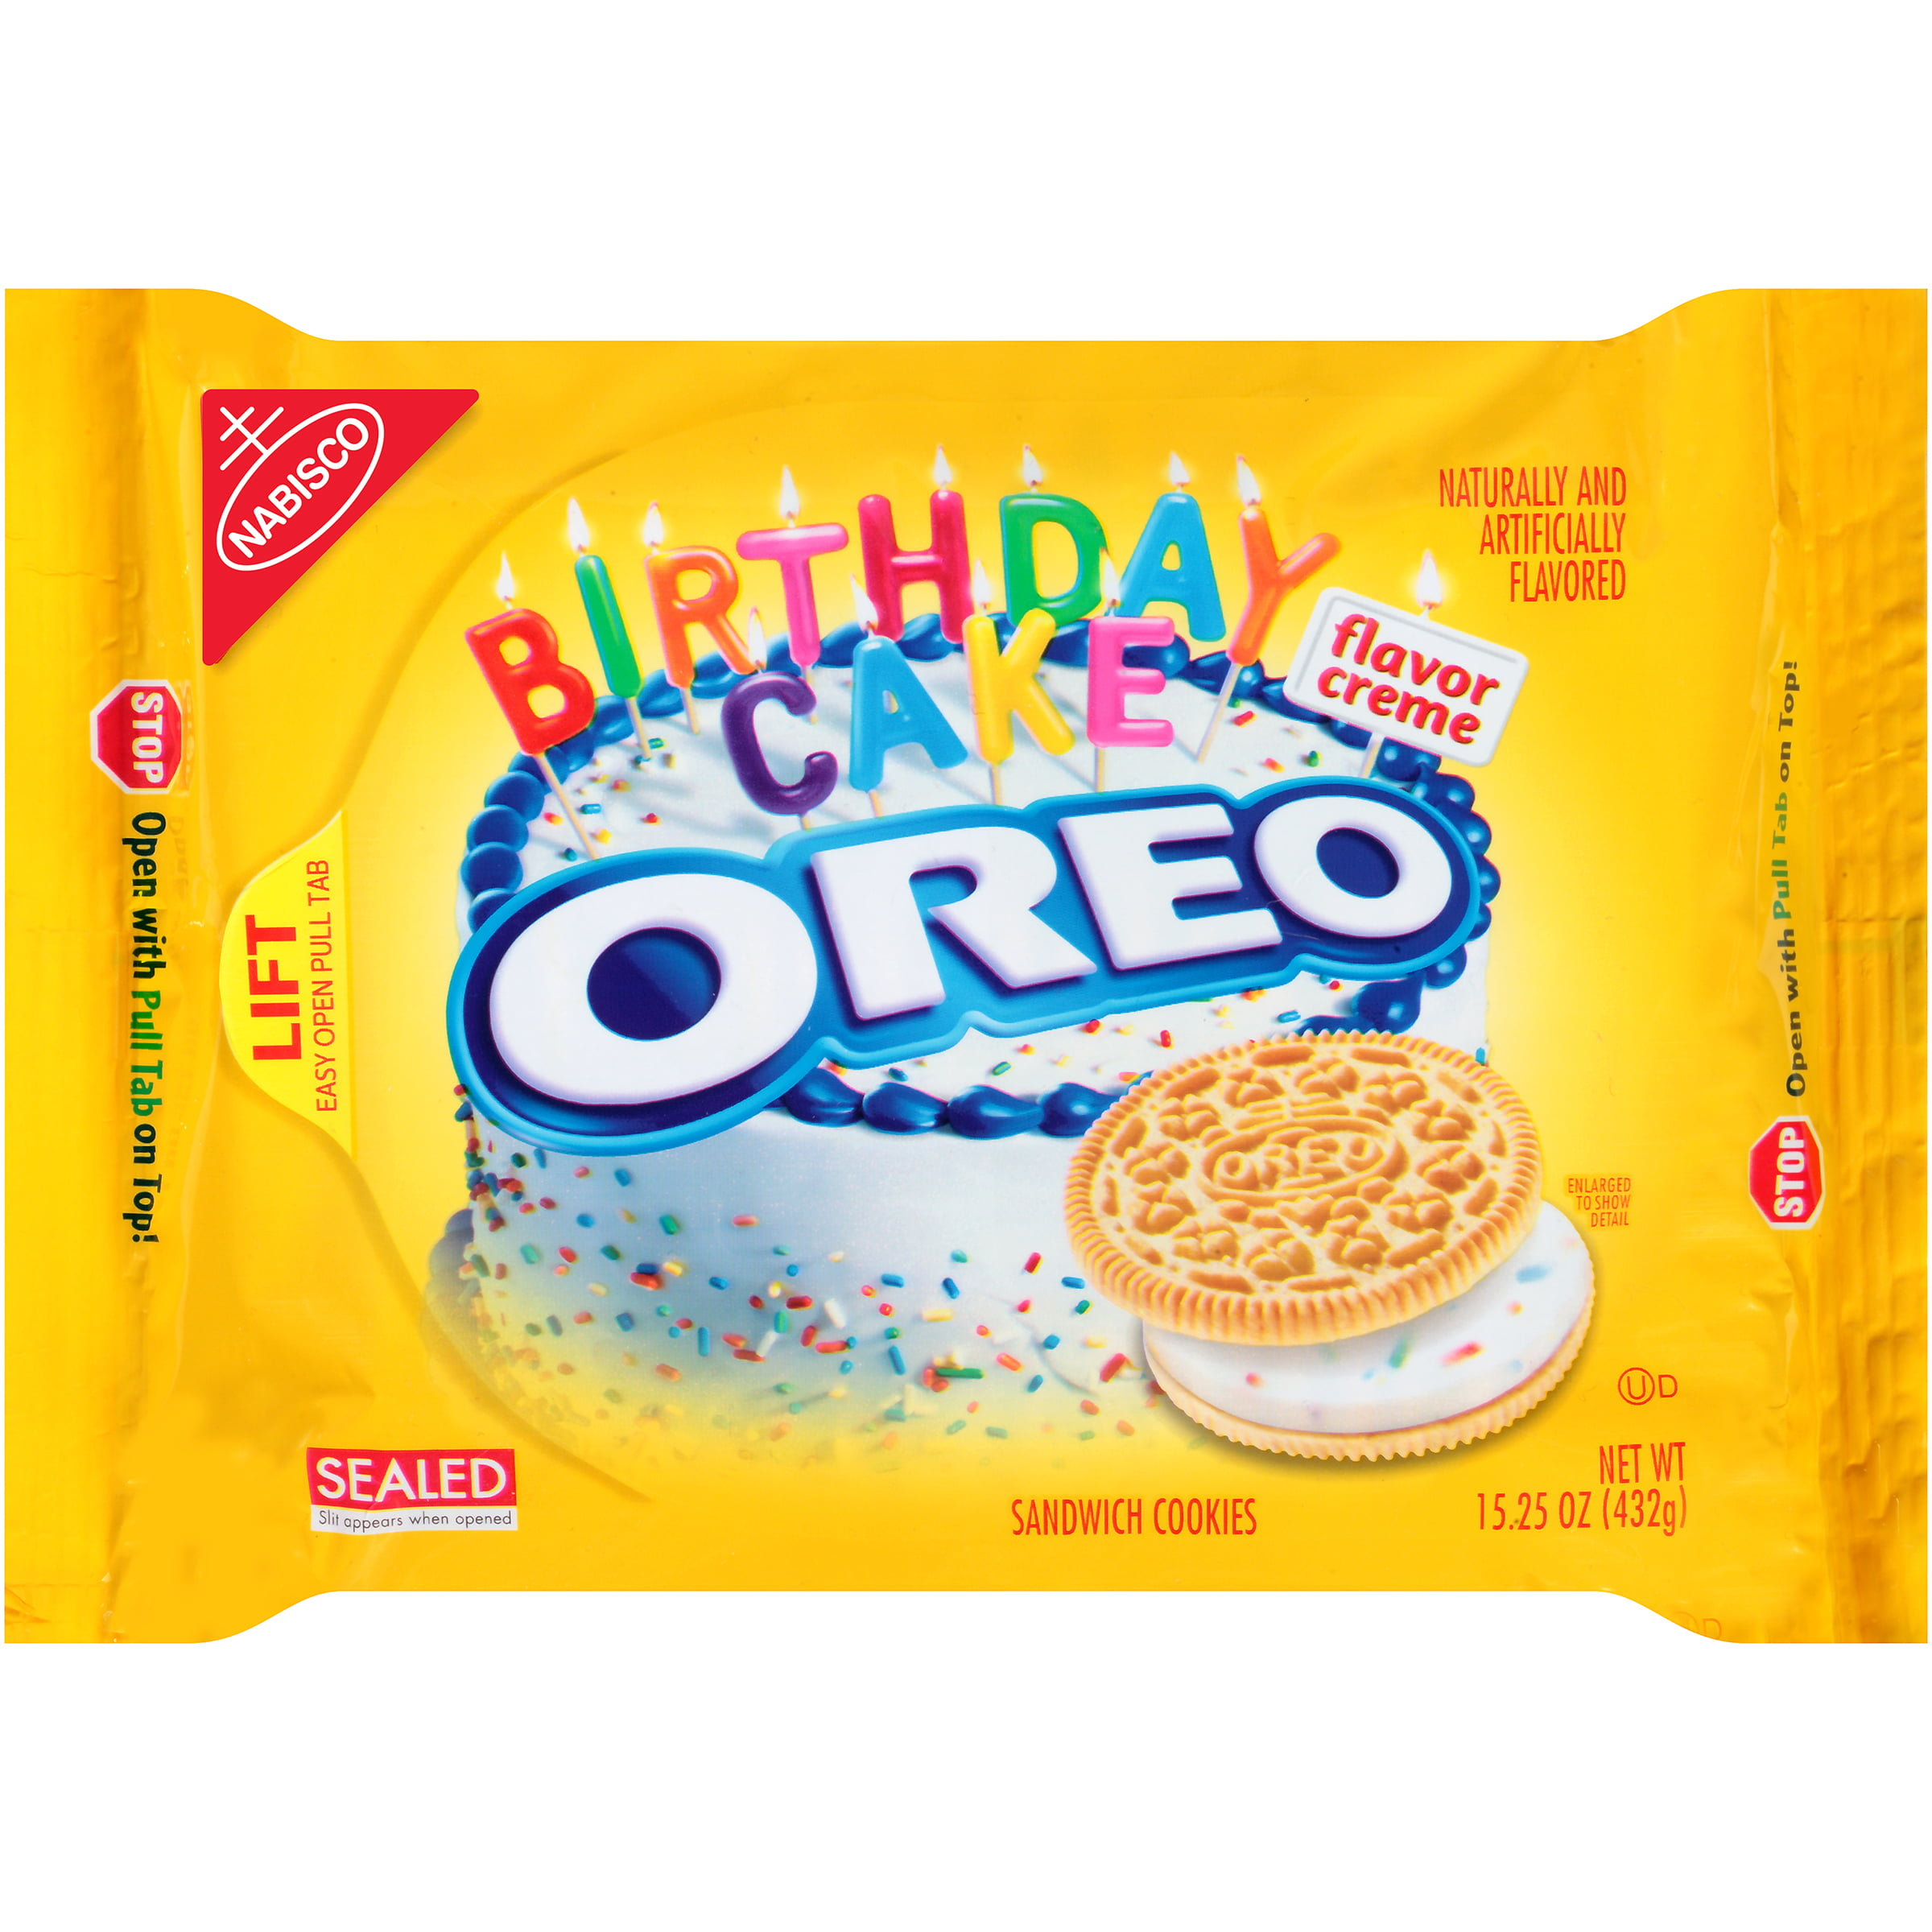 3 Pack) Nabisco Oreo Birthday Cake Flavor Creme Sandwich Cookies